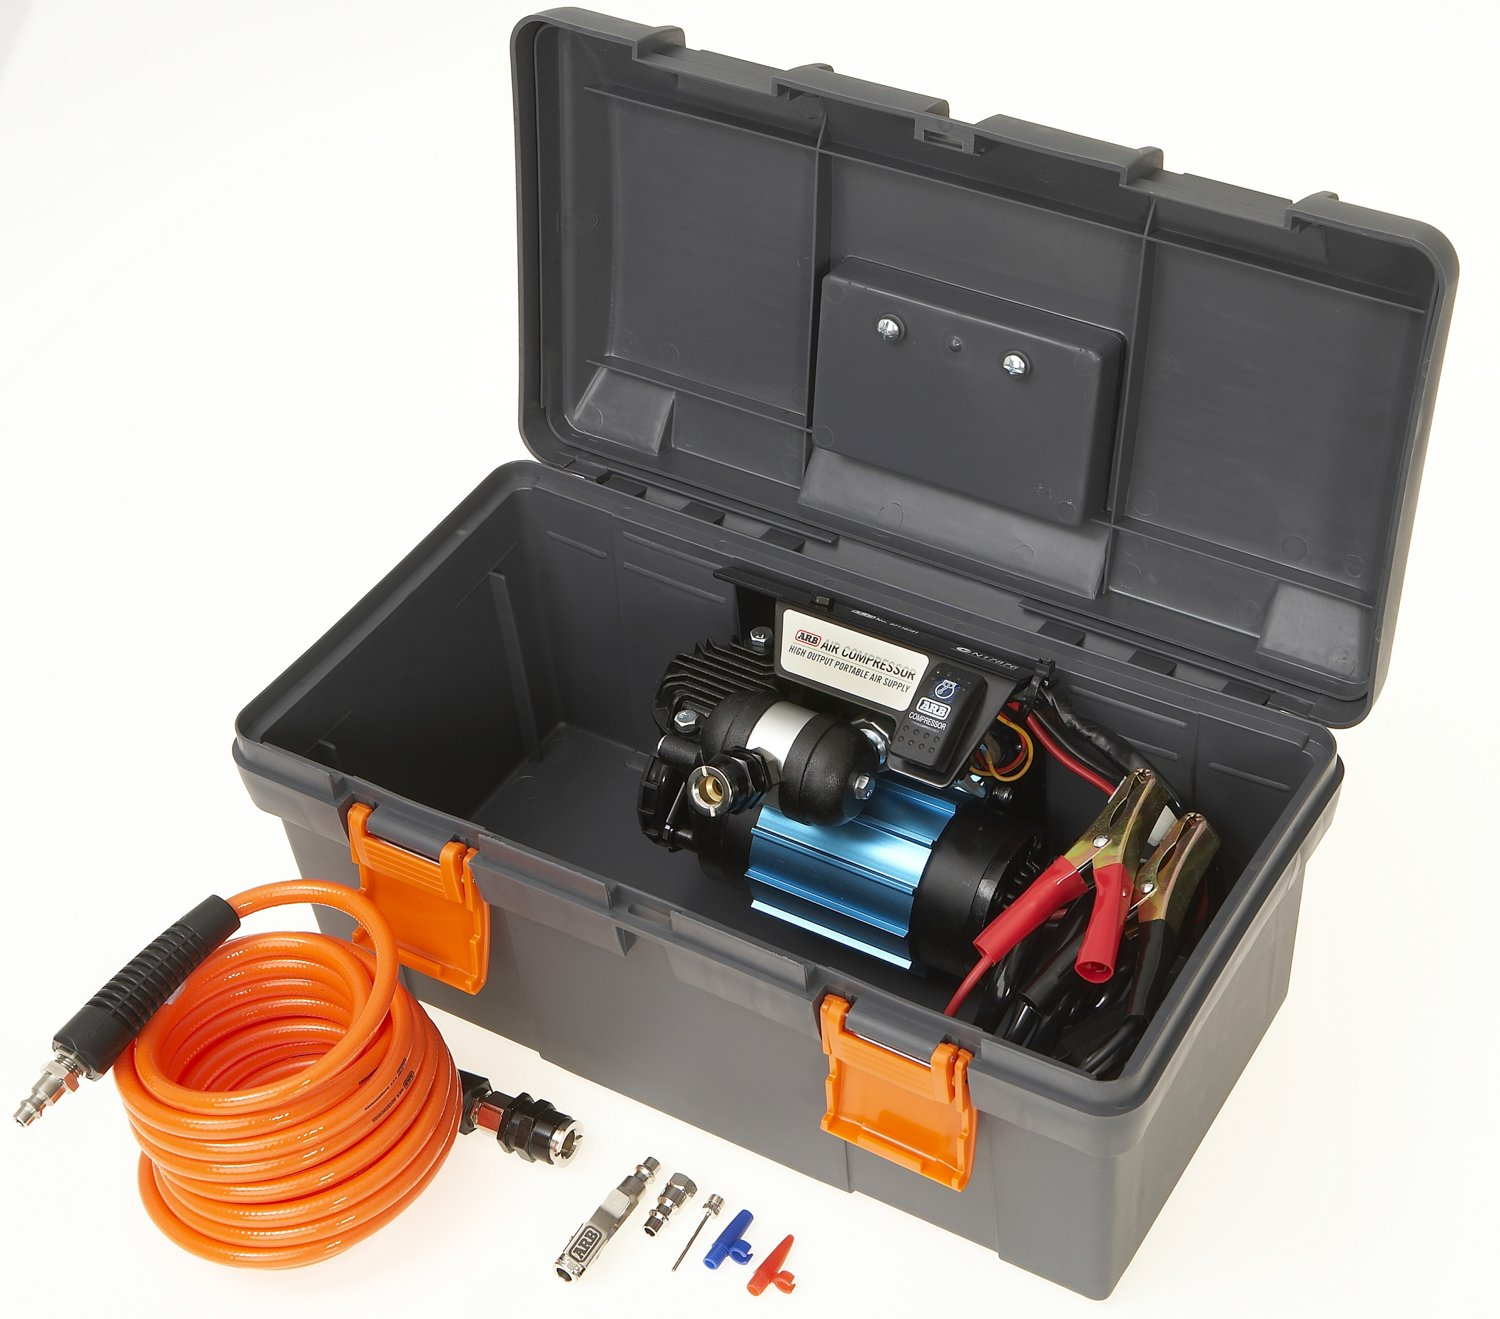 ARB (CKMP12) 12V High Performance Portable Air Compressor by ARB (Image #1)